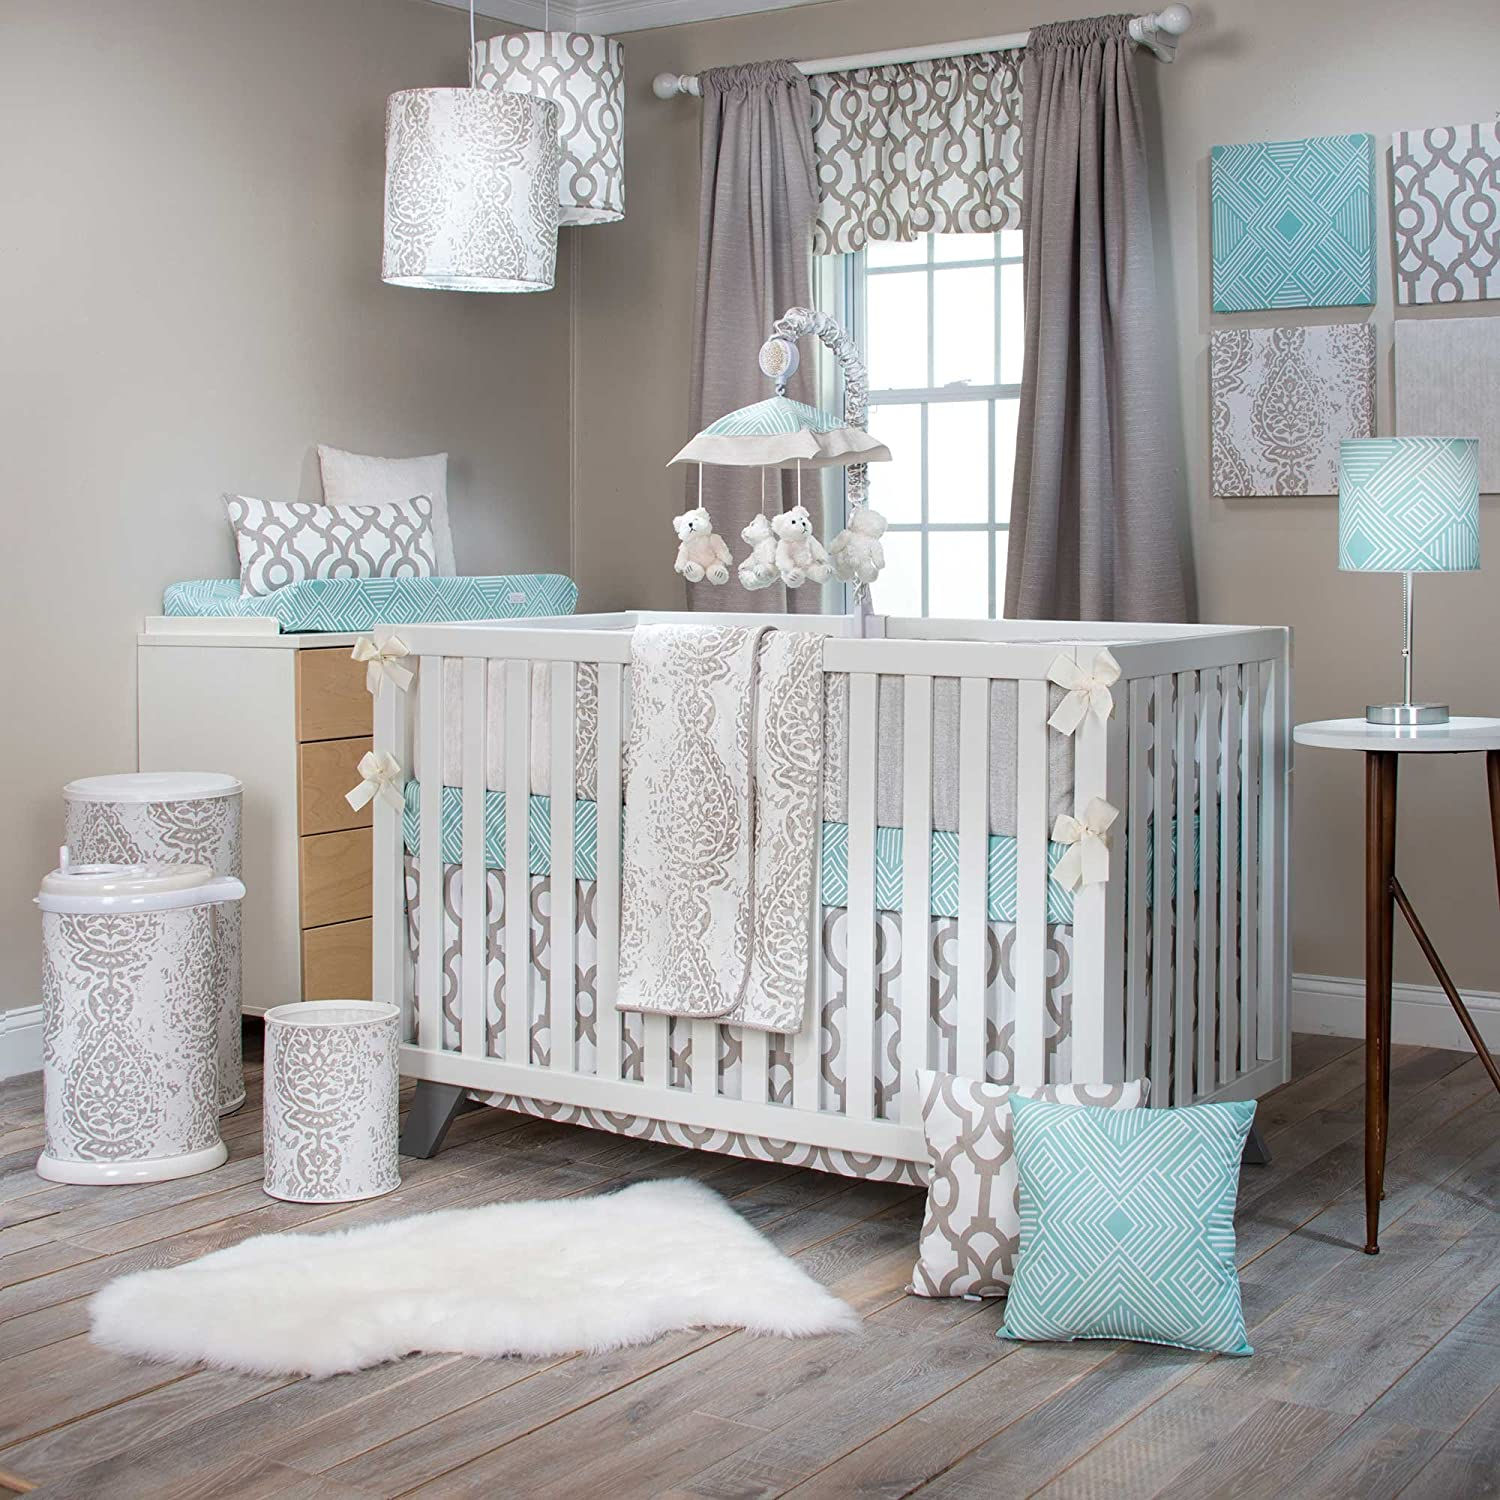 Soho 4 Piece Crib Bedding Set with Bumper by Sweet Potato by Glenna Jean   B019YQZIR0